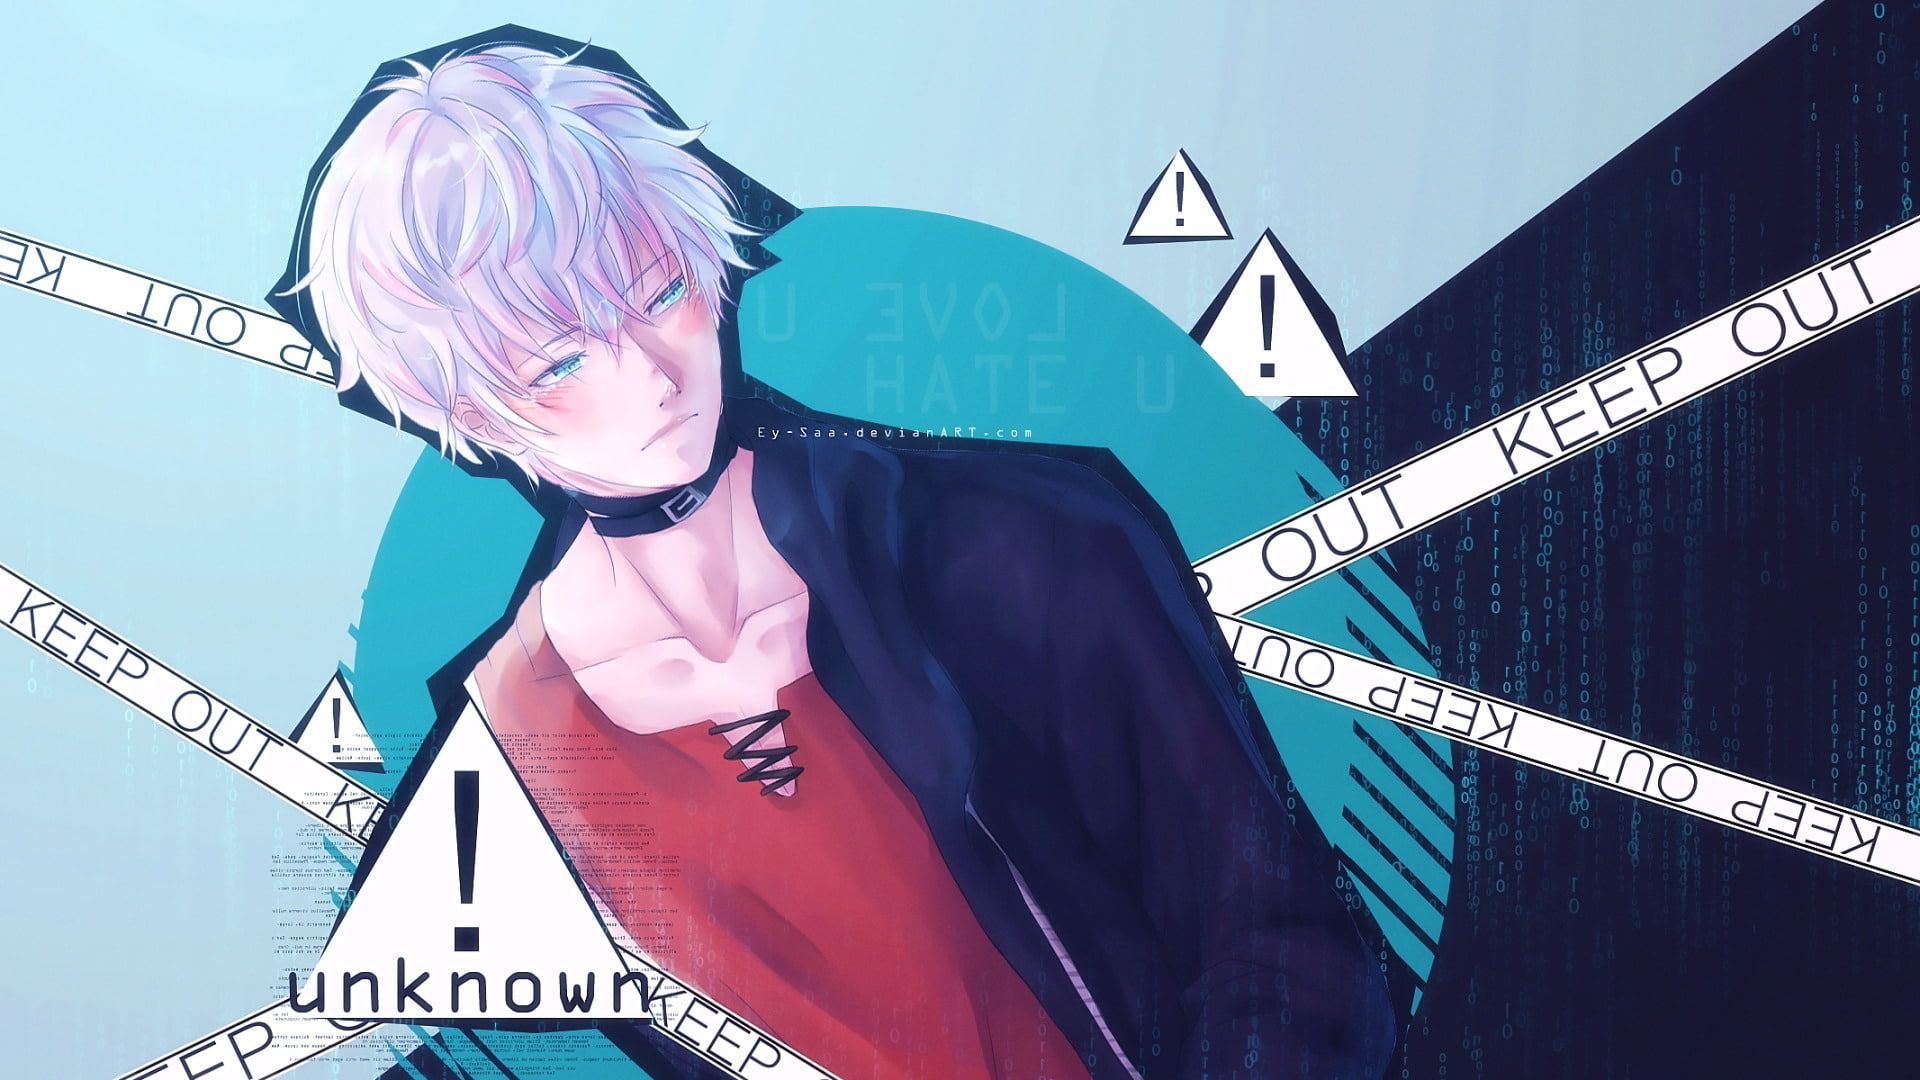 Anime Mystic Messenger Saeran Choi Unknown Mystic Messenger 1080p Wallpaper Hdwallpaper Desktop In 2020 Mystic Messenger Mystic Messenger 707 Saeran